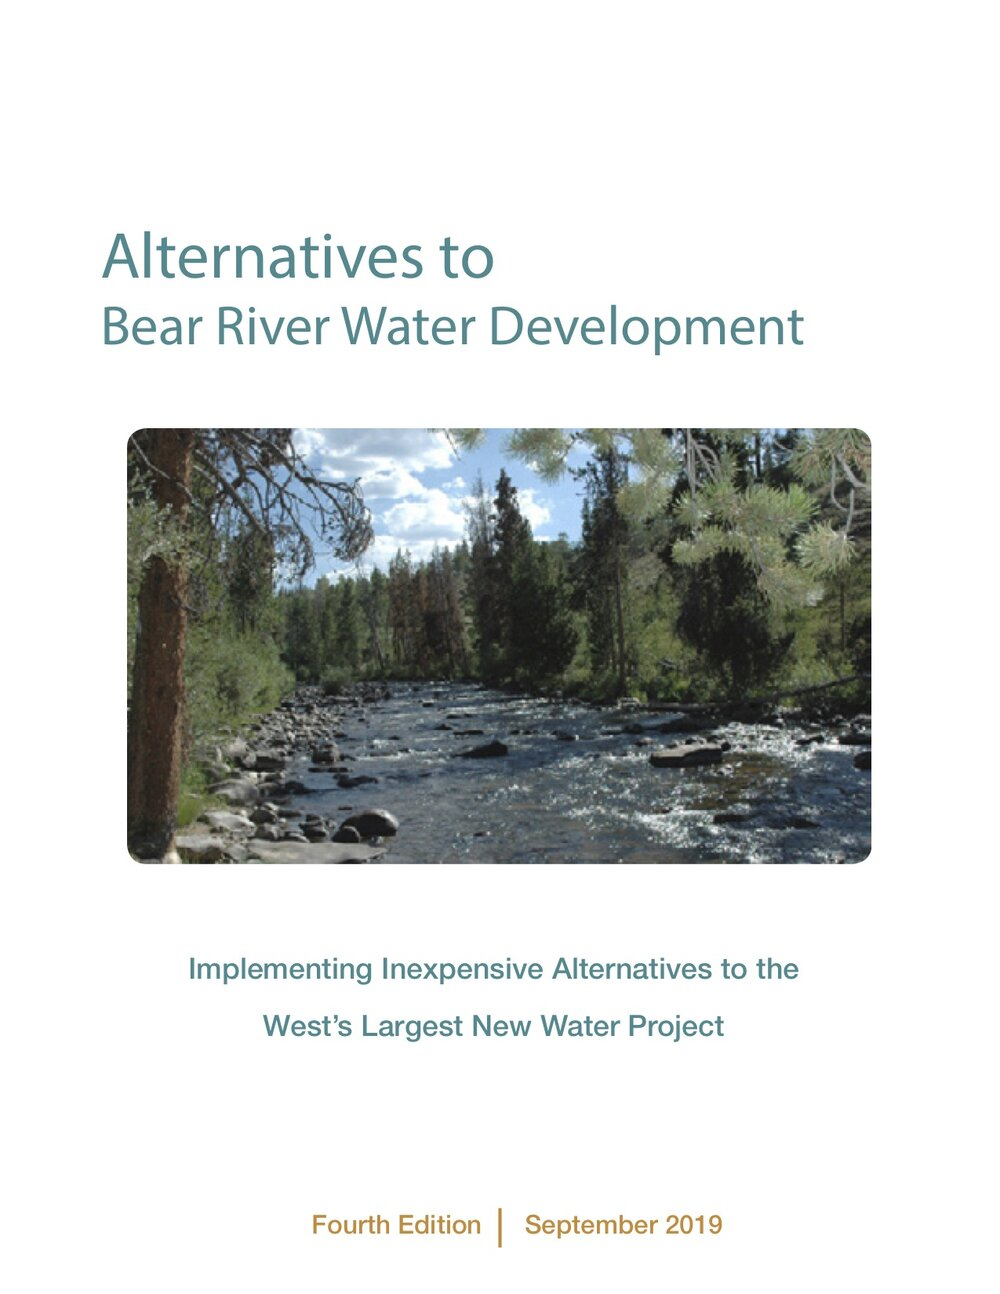 Alternatives to Bear River Water Development